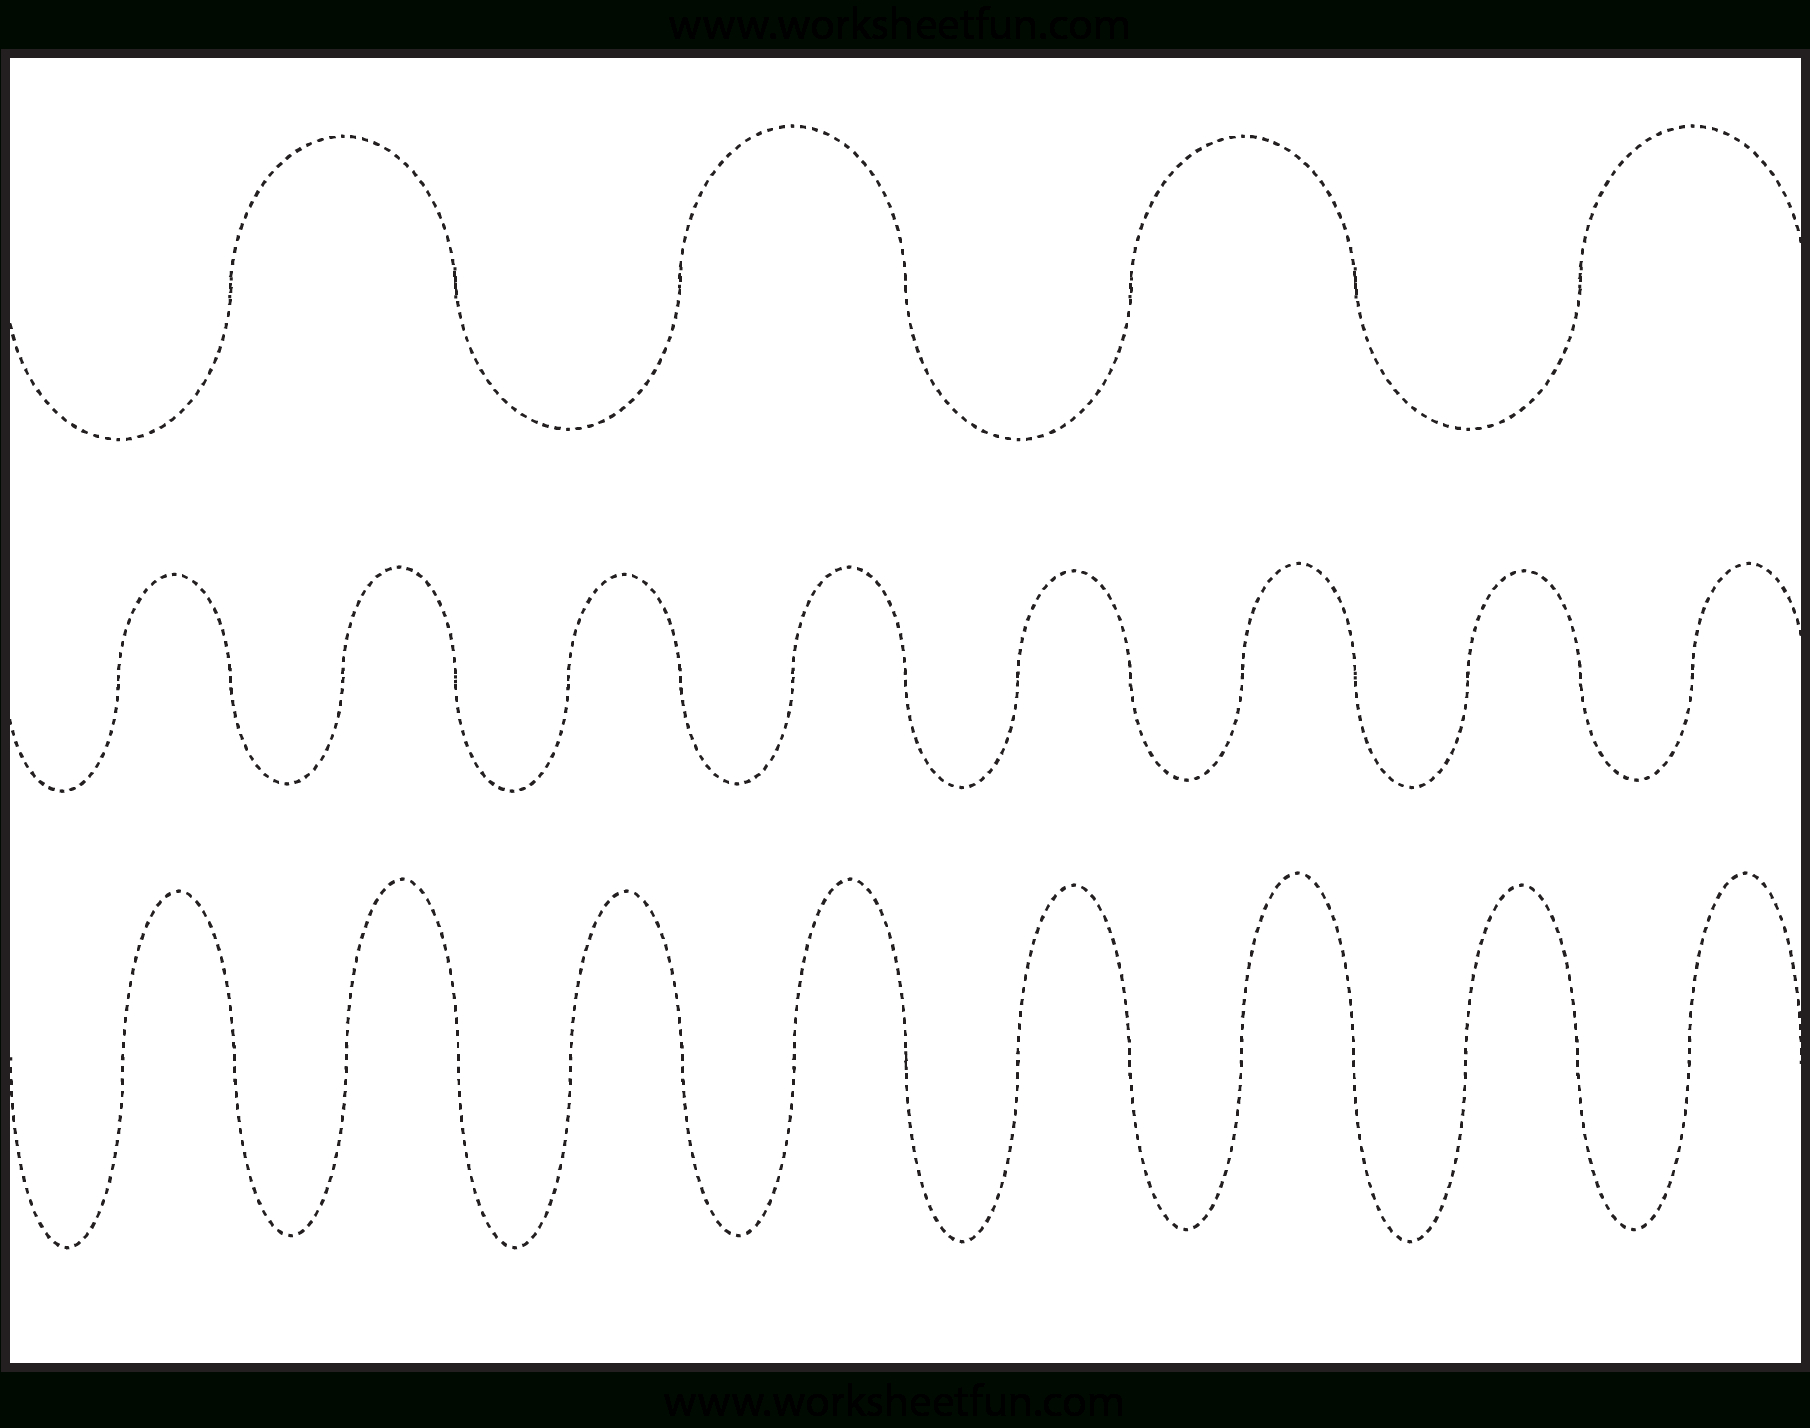 Curved Line Tracing – 3 Worksheets / Free Printable Worksheets - Free Printable Preschool Worksheets Tracing Lines